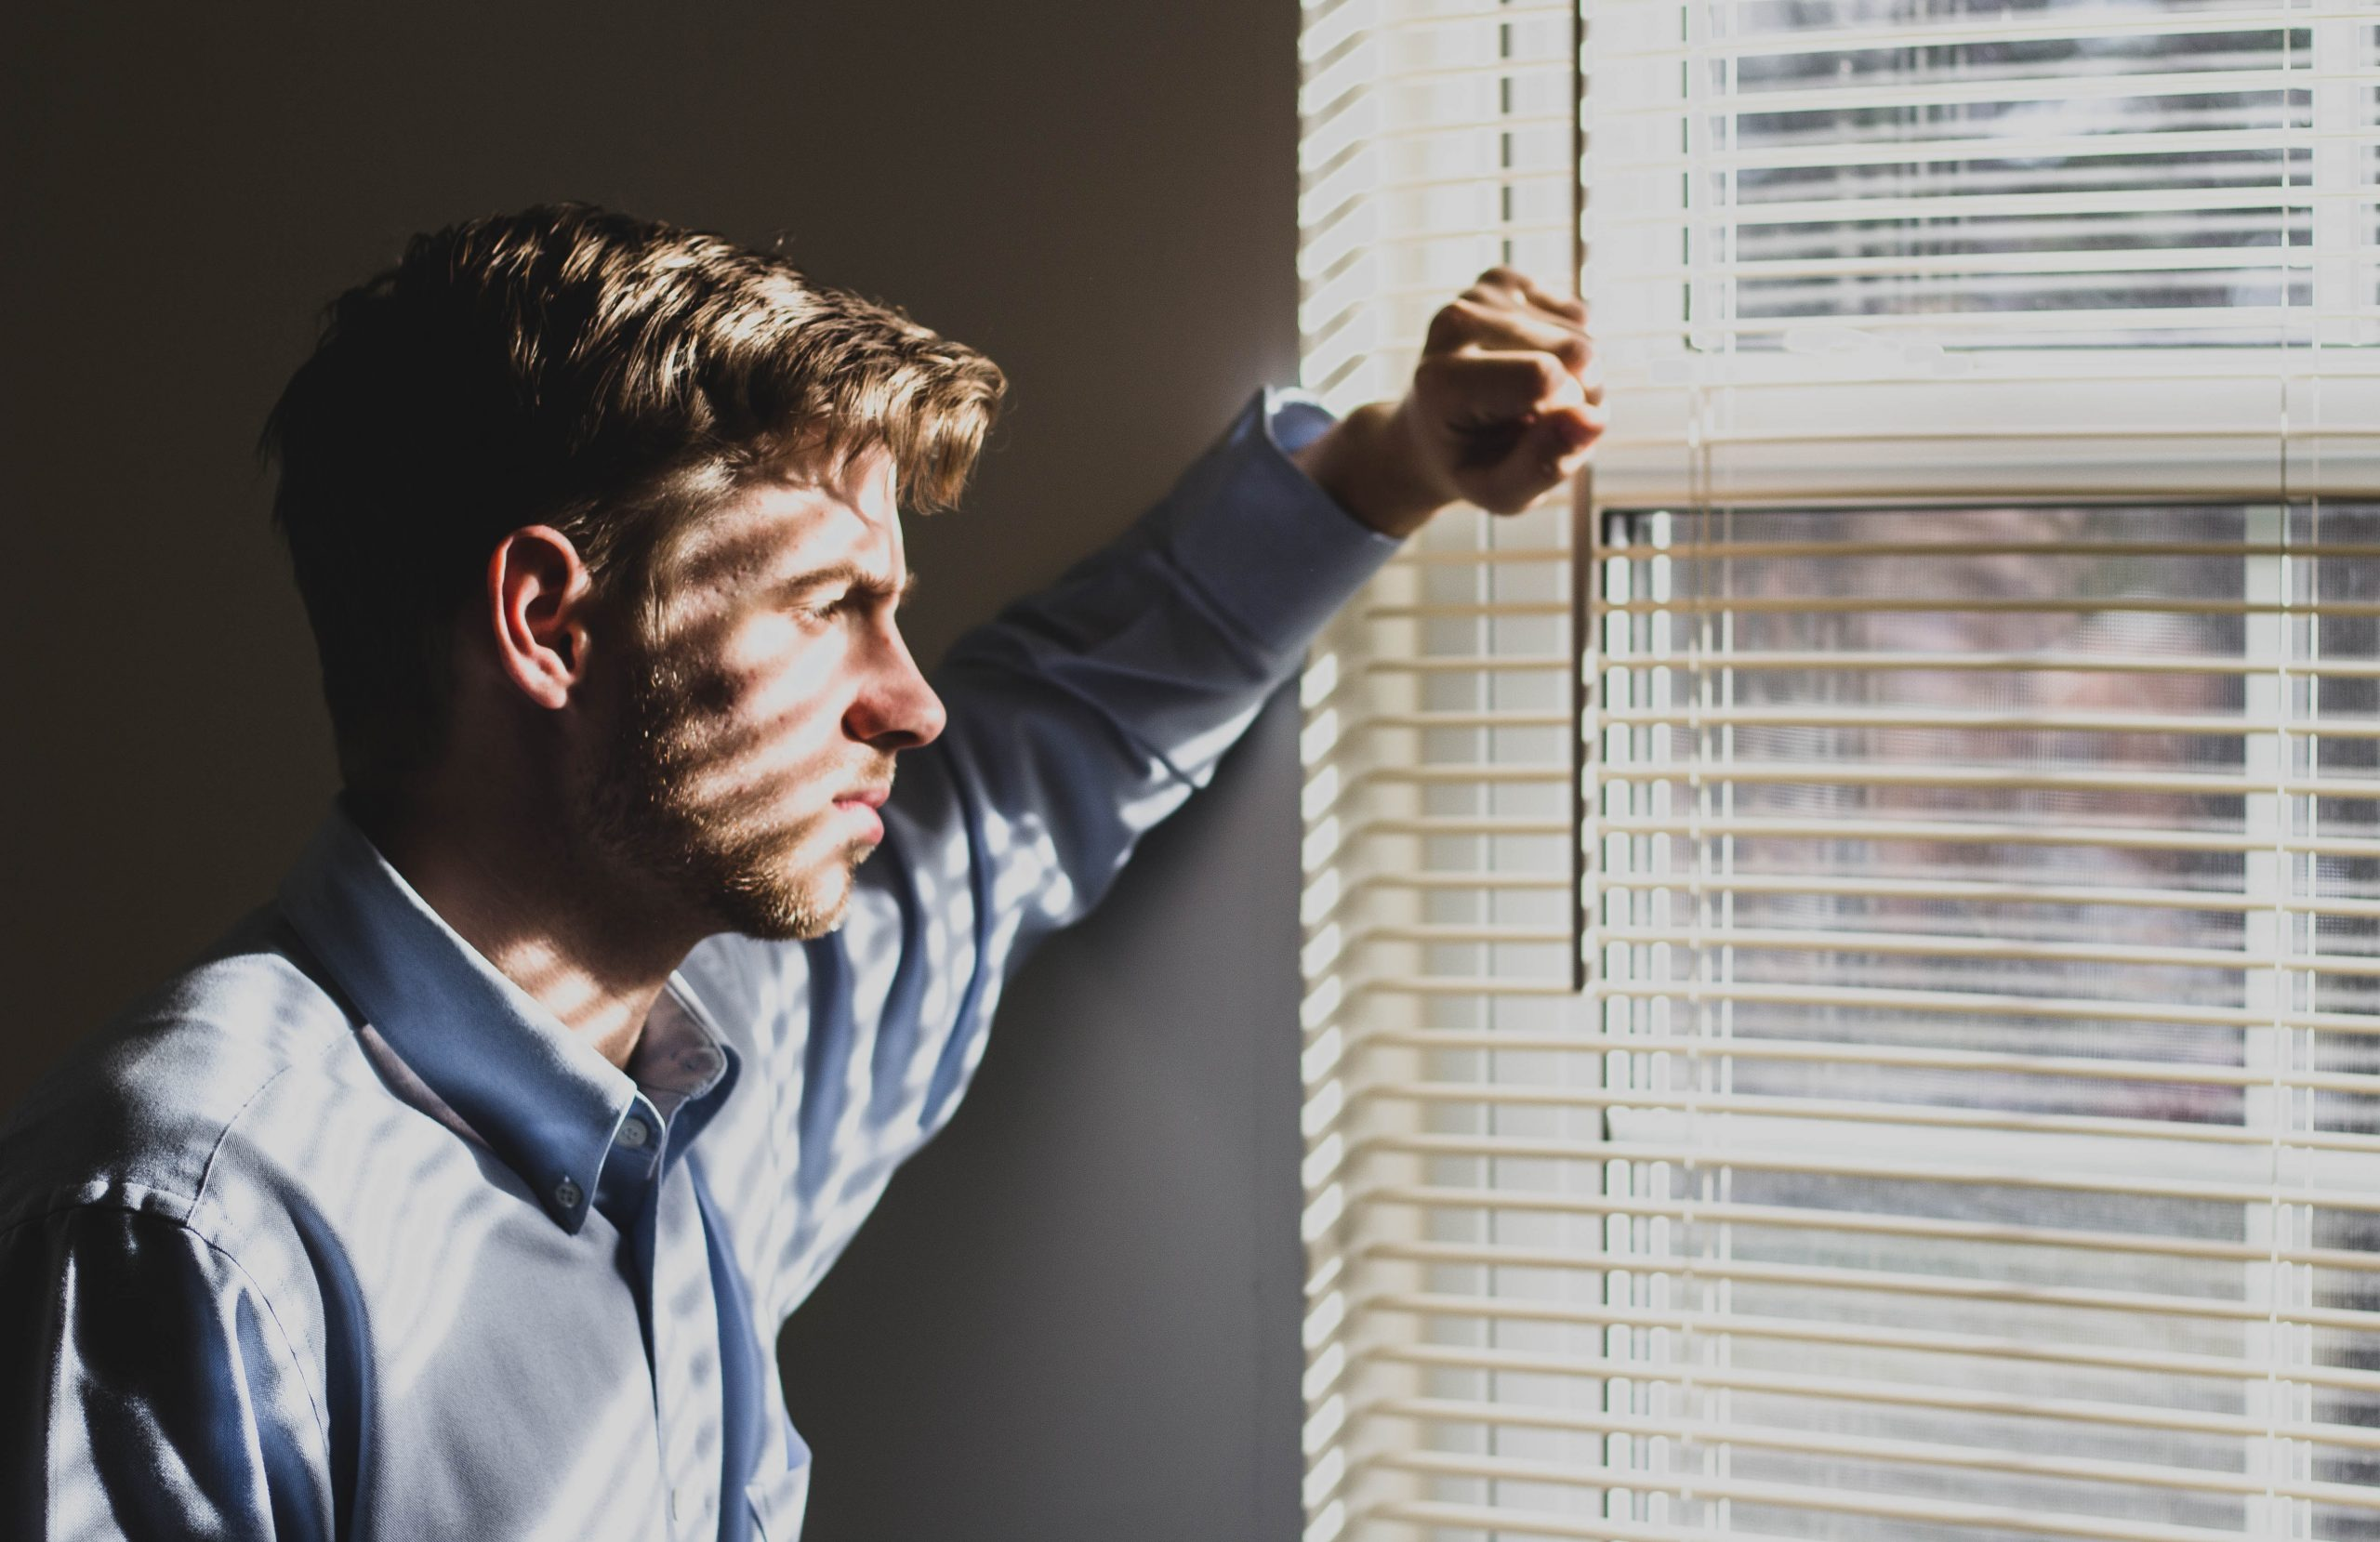 A man looking wistfully out of a window with blinds casting shadows on his face